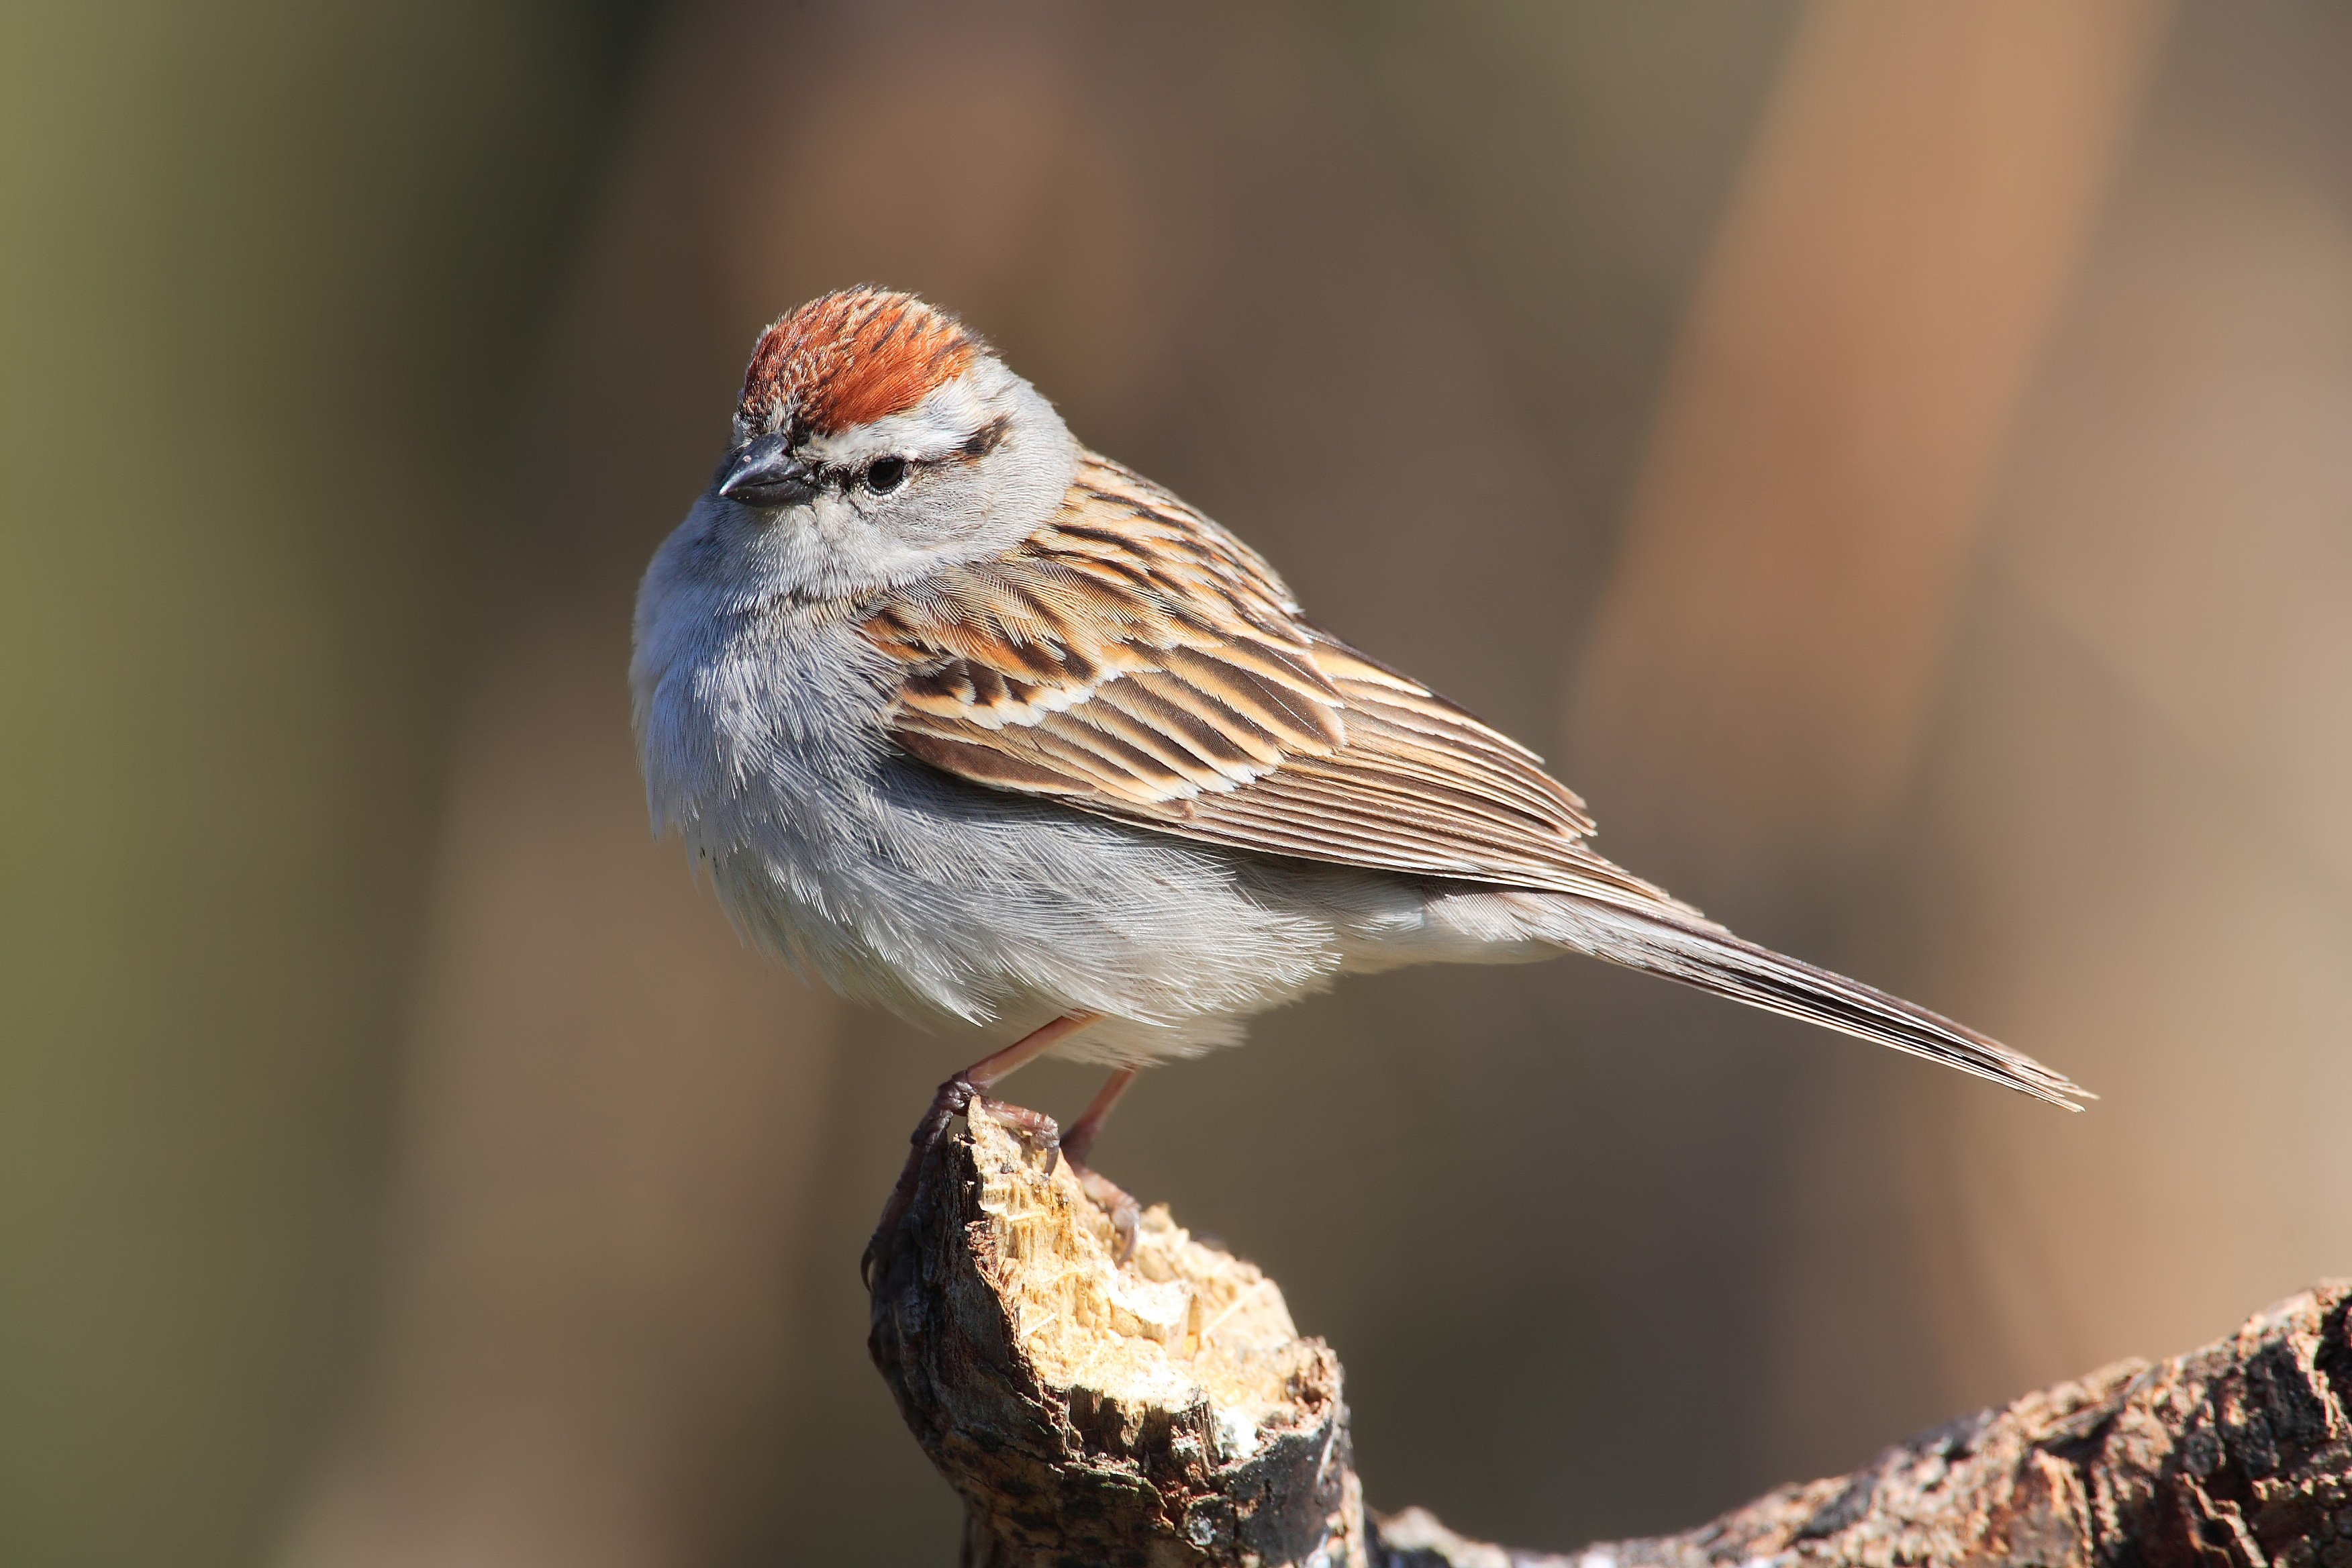 chipping sparrow - facts about sparrows